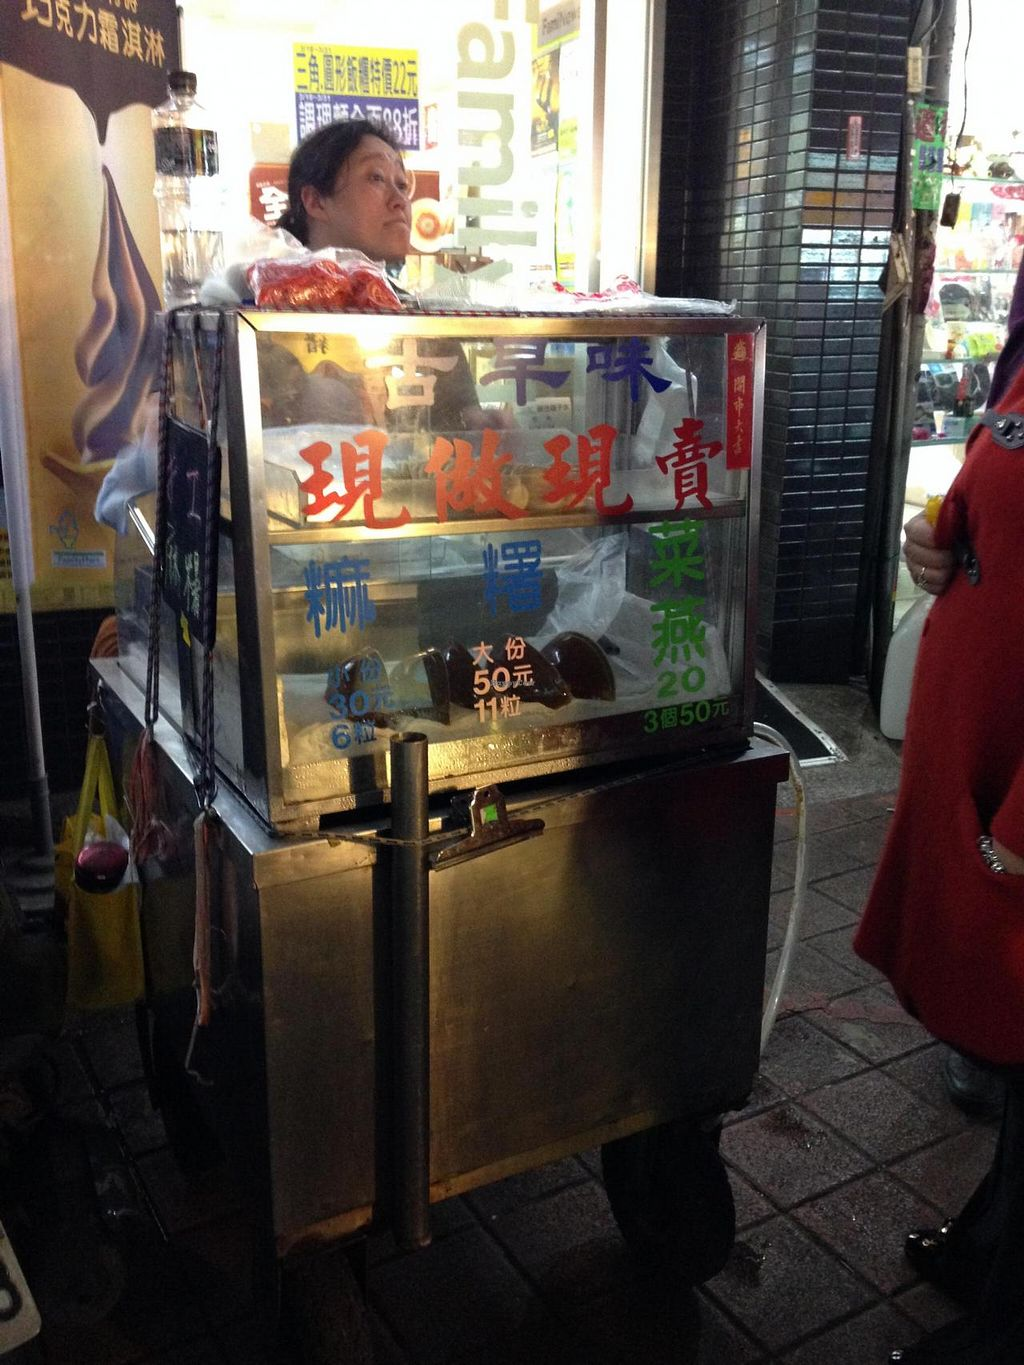 """Photo of Ma Shu Cai Yan - Food Stall  by <a href=""""/members/profile/Stevie"""">Stevie</a> <br/>1 <br/> March 20, 2015  - <a href='/contact/abuse/image/56715/96353'>Report</a>"""